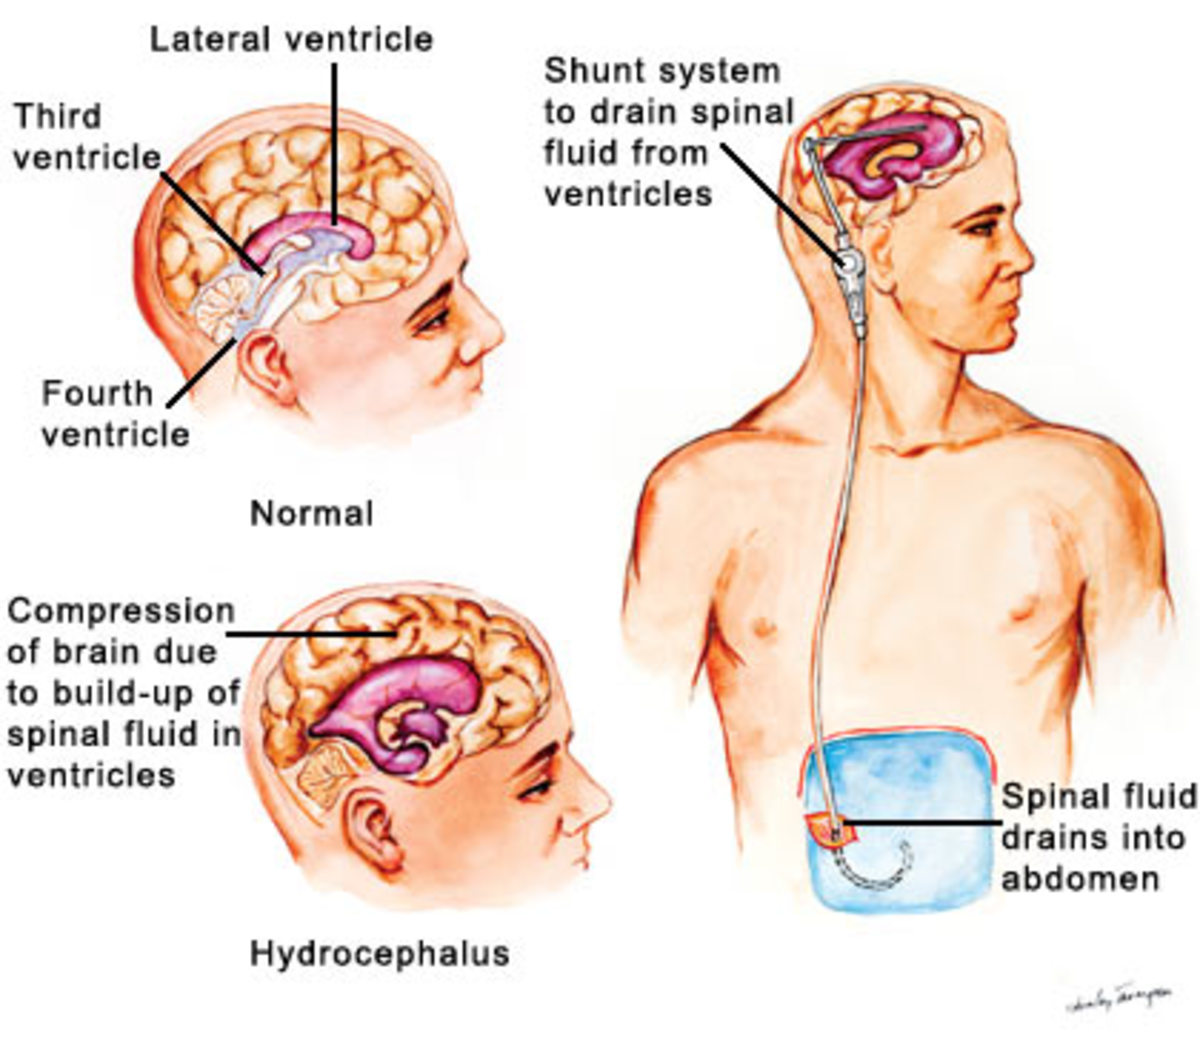 Graphic showing normal pressure hydrocephalus